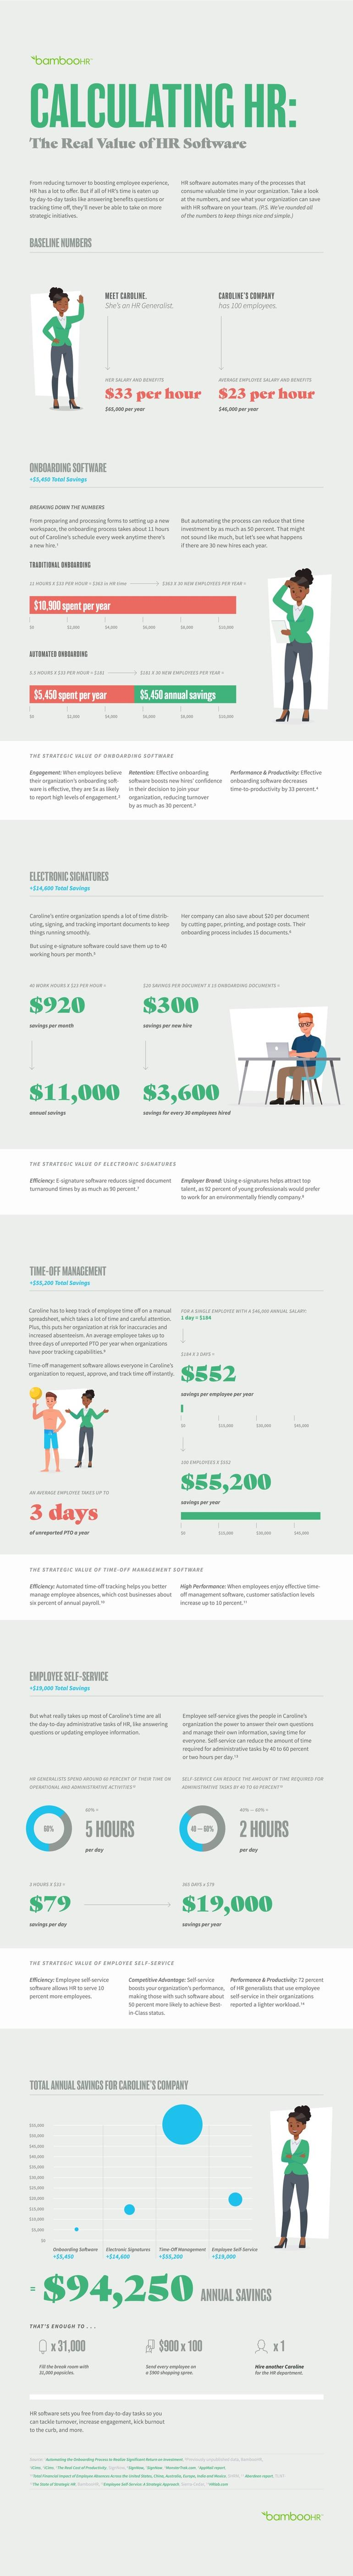 How to Use HR Software to Save Your Small Business Money (INFOGRAPHIC)